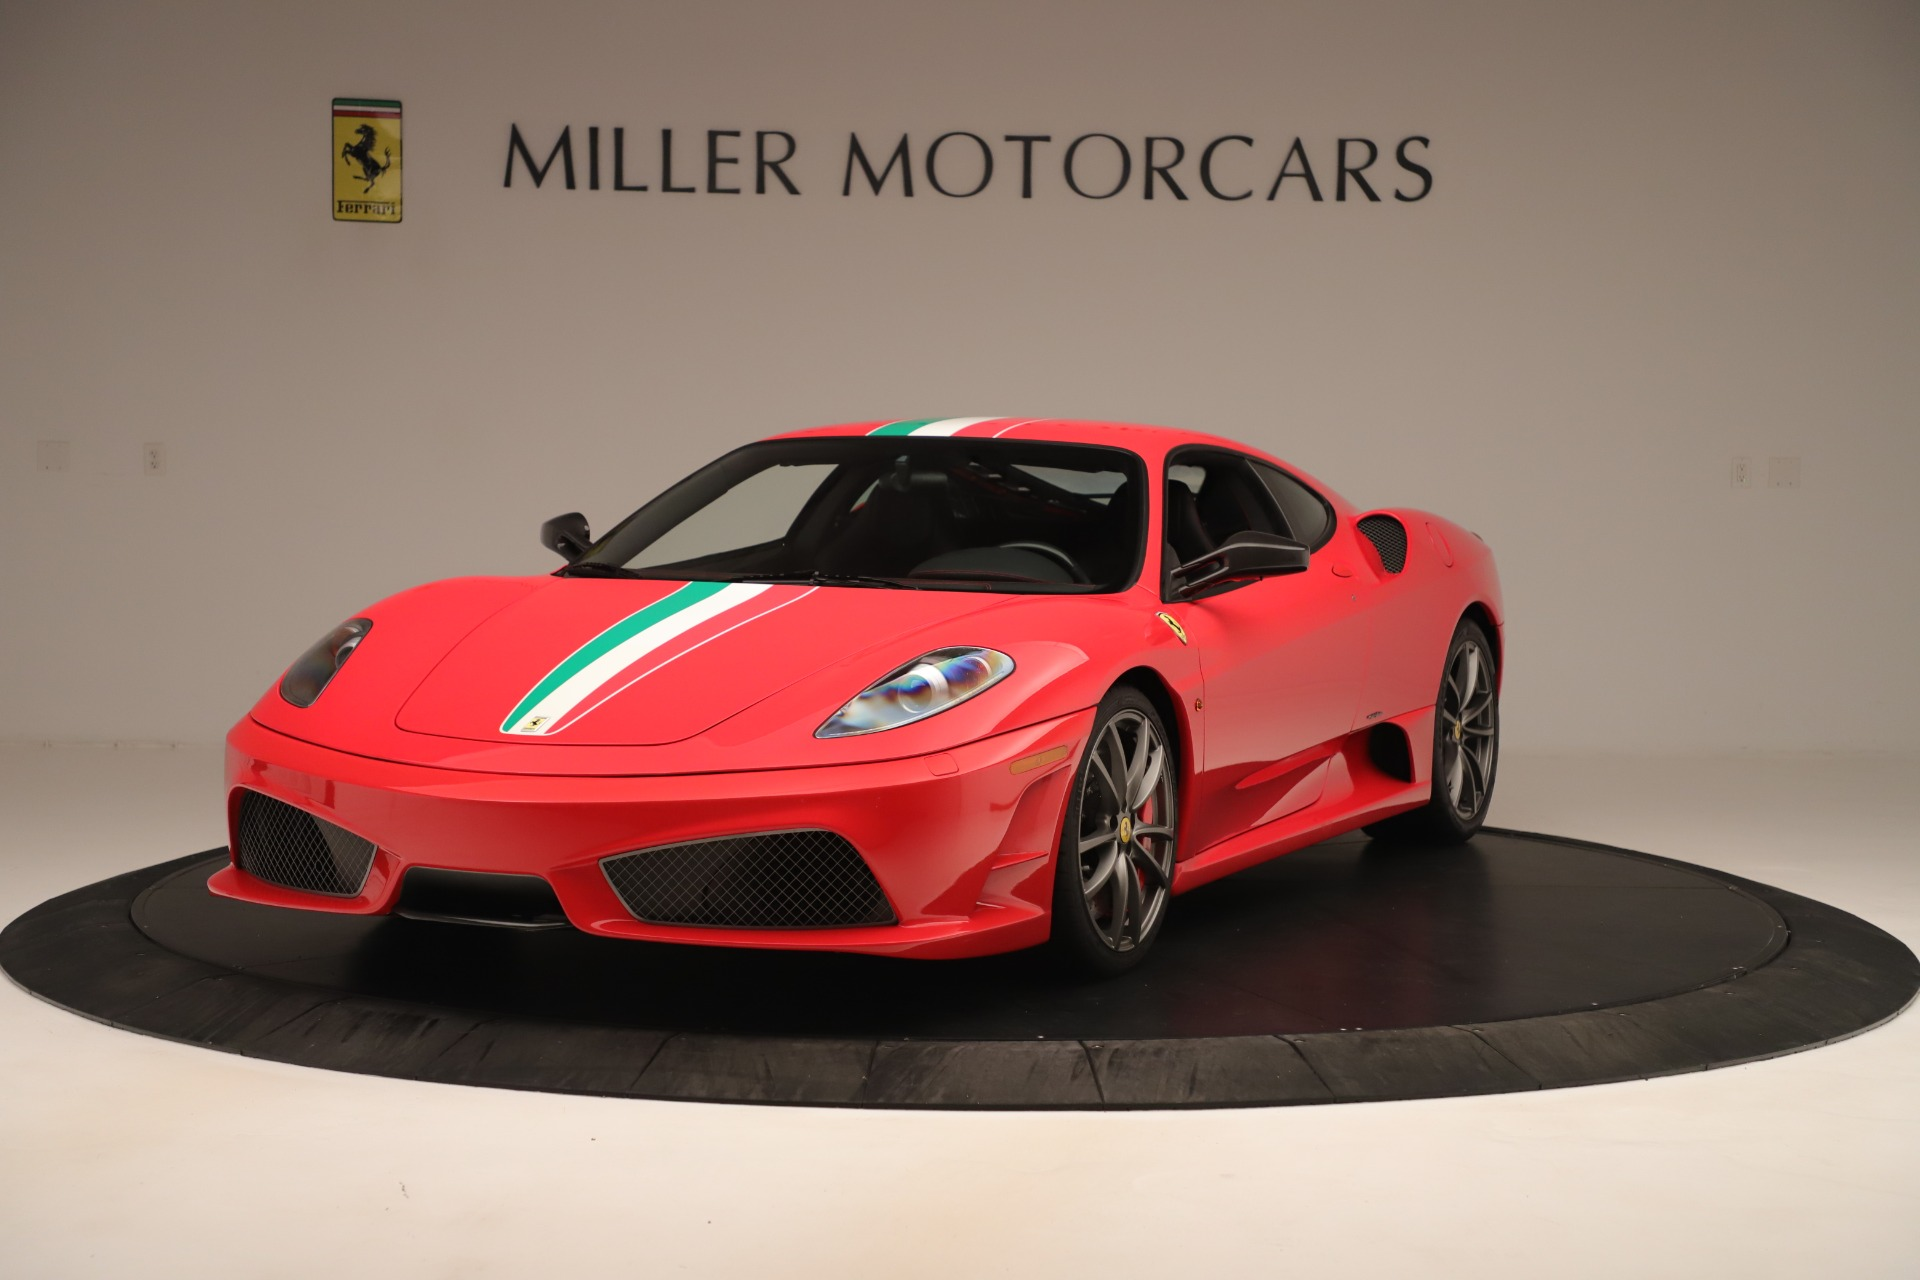 Used 2008 Ferrari F430 Scuderia for sale $229,900 at Alfa Romeo of Greenwich in Greenwich CT 06830 1